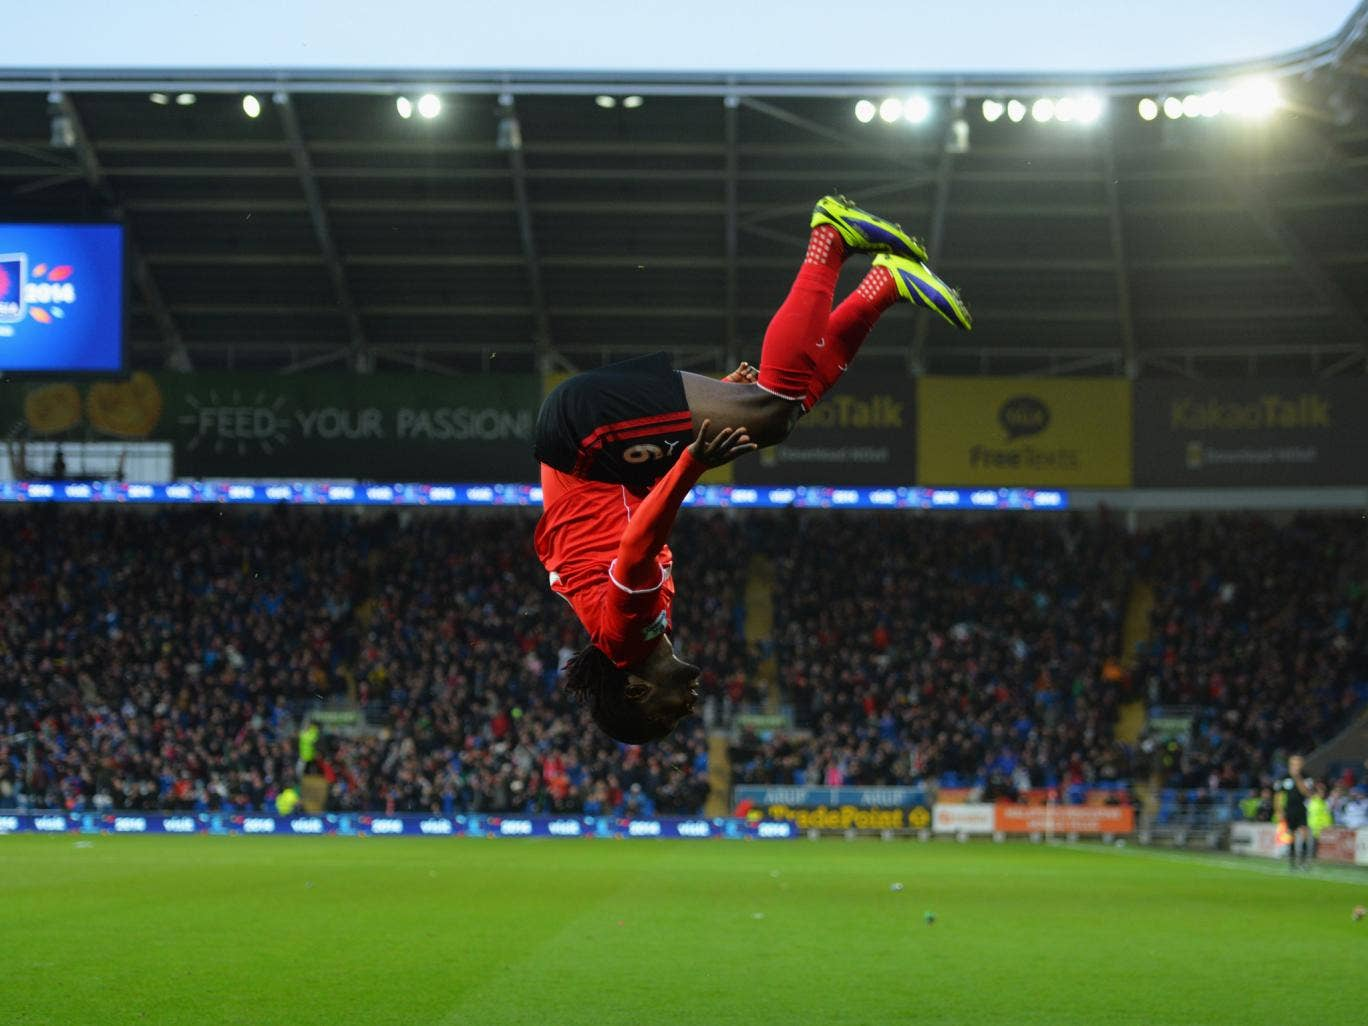 Kenwyne Jones celebrates after scoring the winner for Cardiff on his debut against Nowrich